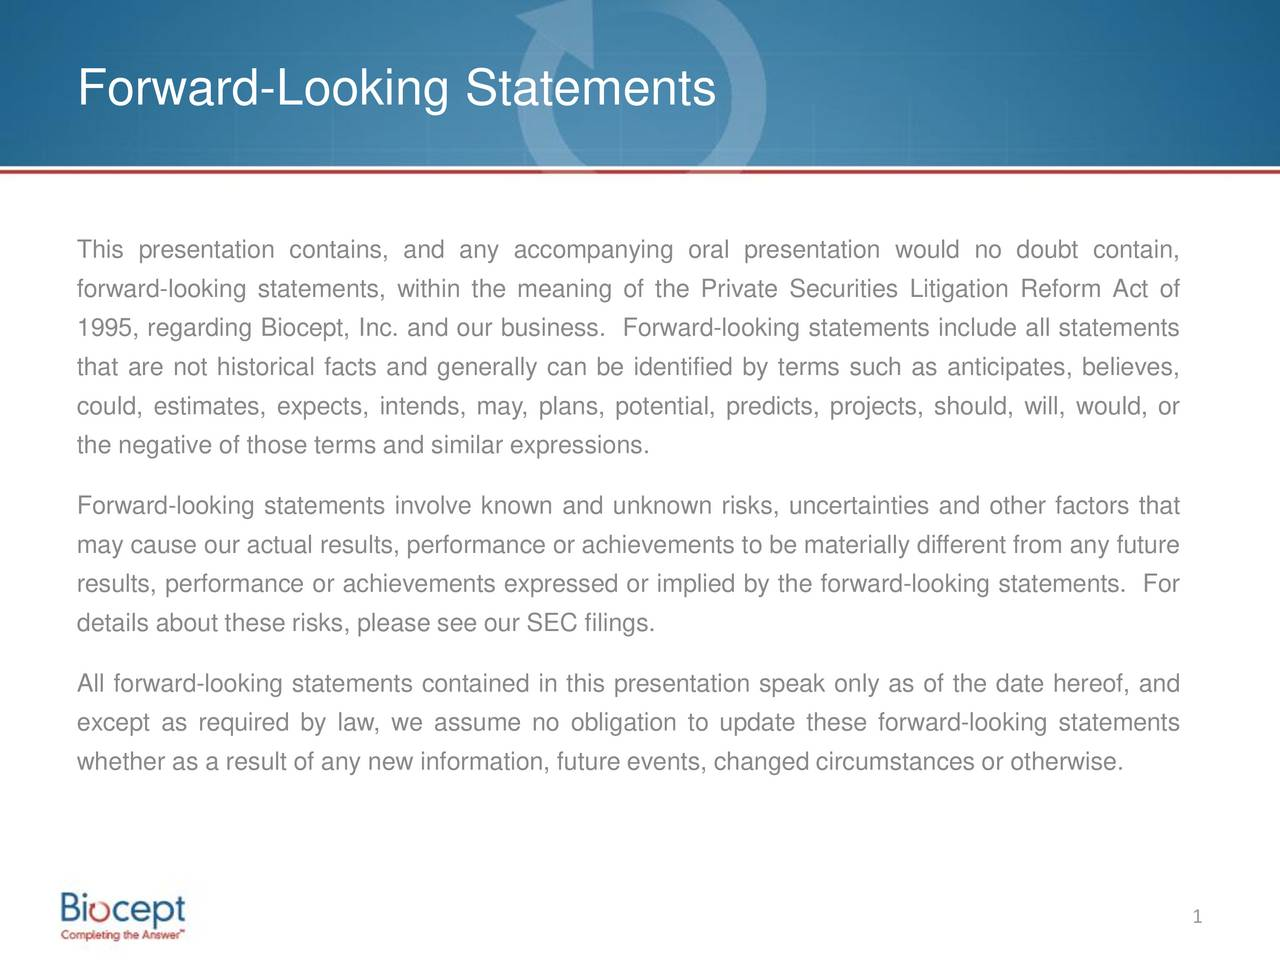 This presentation contains, and any accompanying oral presentation would no doubt contain, forward-looking statements, within the meaning of the Private Securities Litigation Reform Act of 1995, regarding Biocept, Inc. and our business. Forward-looking statements include all statements that are not historical facts and generally can be identified by terms such as anticipates, believes, could, estimates, expects, intends, may, plans, potential, predicts, projects, should, will, would, or the negative of those terms and similar expressions. Forward-looking statements involve known and unknown risks, uncertainties and other factors that may cause our actual results, performance or achievements to be materially different from any future results, performance or achievements expressed or implied by the forward-looking statements. For details about these risks, please see our SEC filings. All forward-looking statements contained in this presentation speak only as of the date hereof, and except as required by law, we assume no obligation to update these forward-looking statements whether as a result of any new information, future events, changed circumstances or otherwise. 1